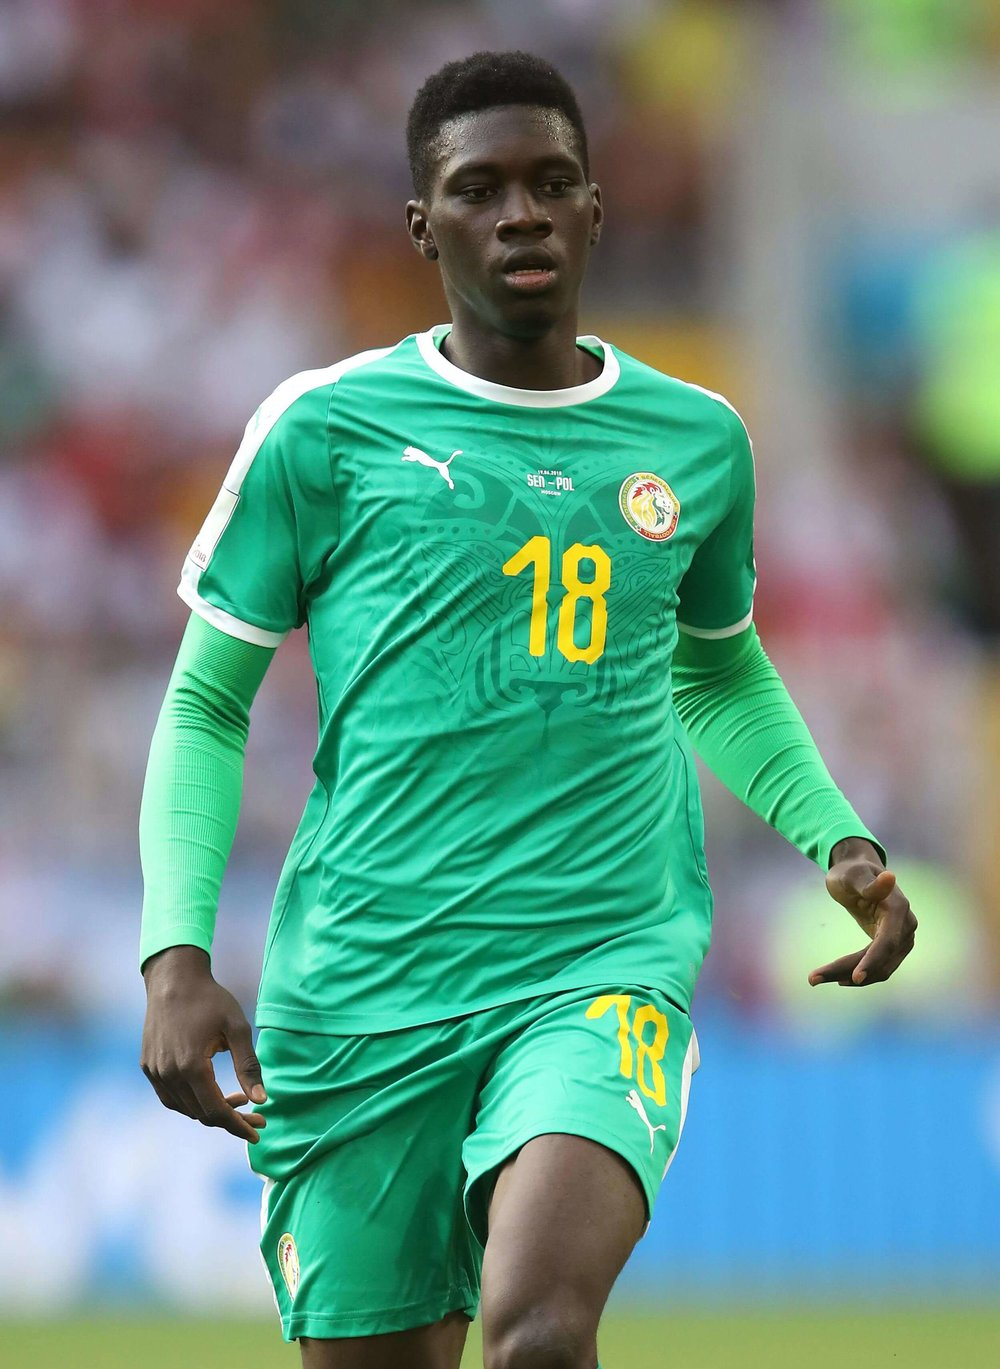 Ismalia Sarr of Senegal is being courted by Manchester United, Chelsea, and other top clubs after a good performance at the World Cup 2018.